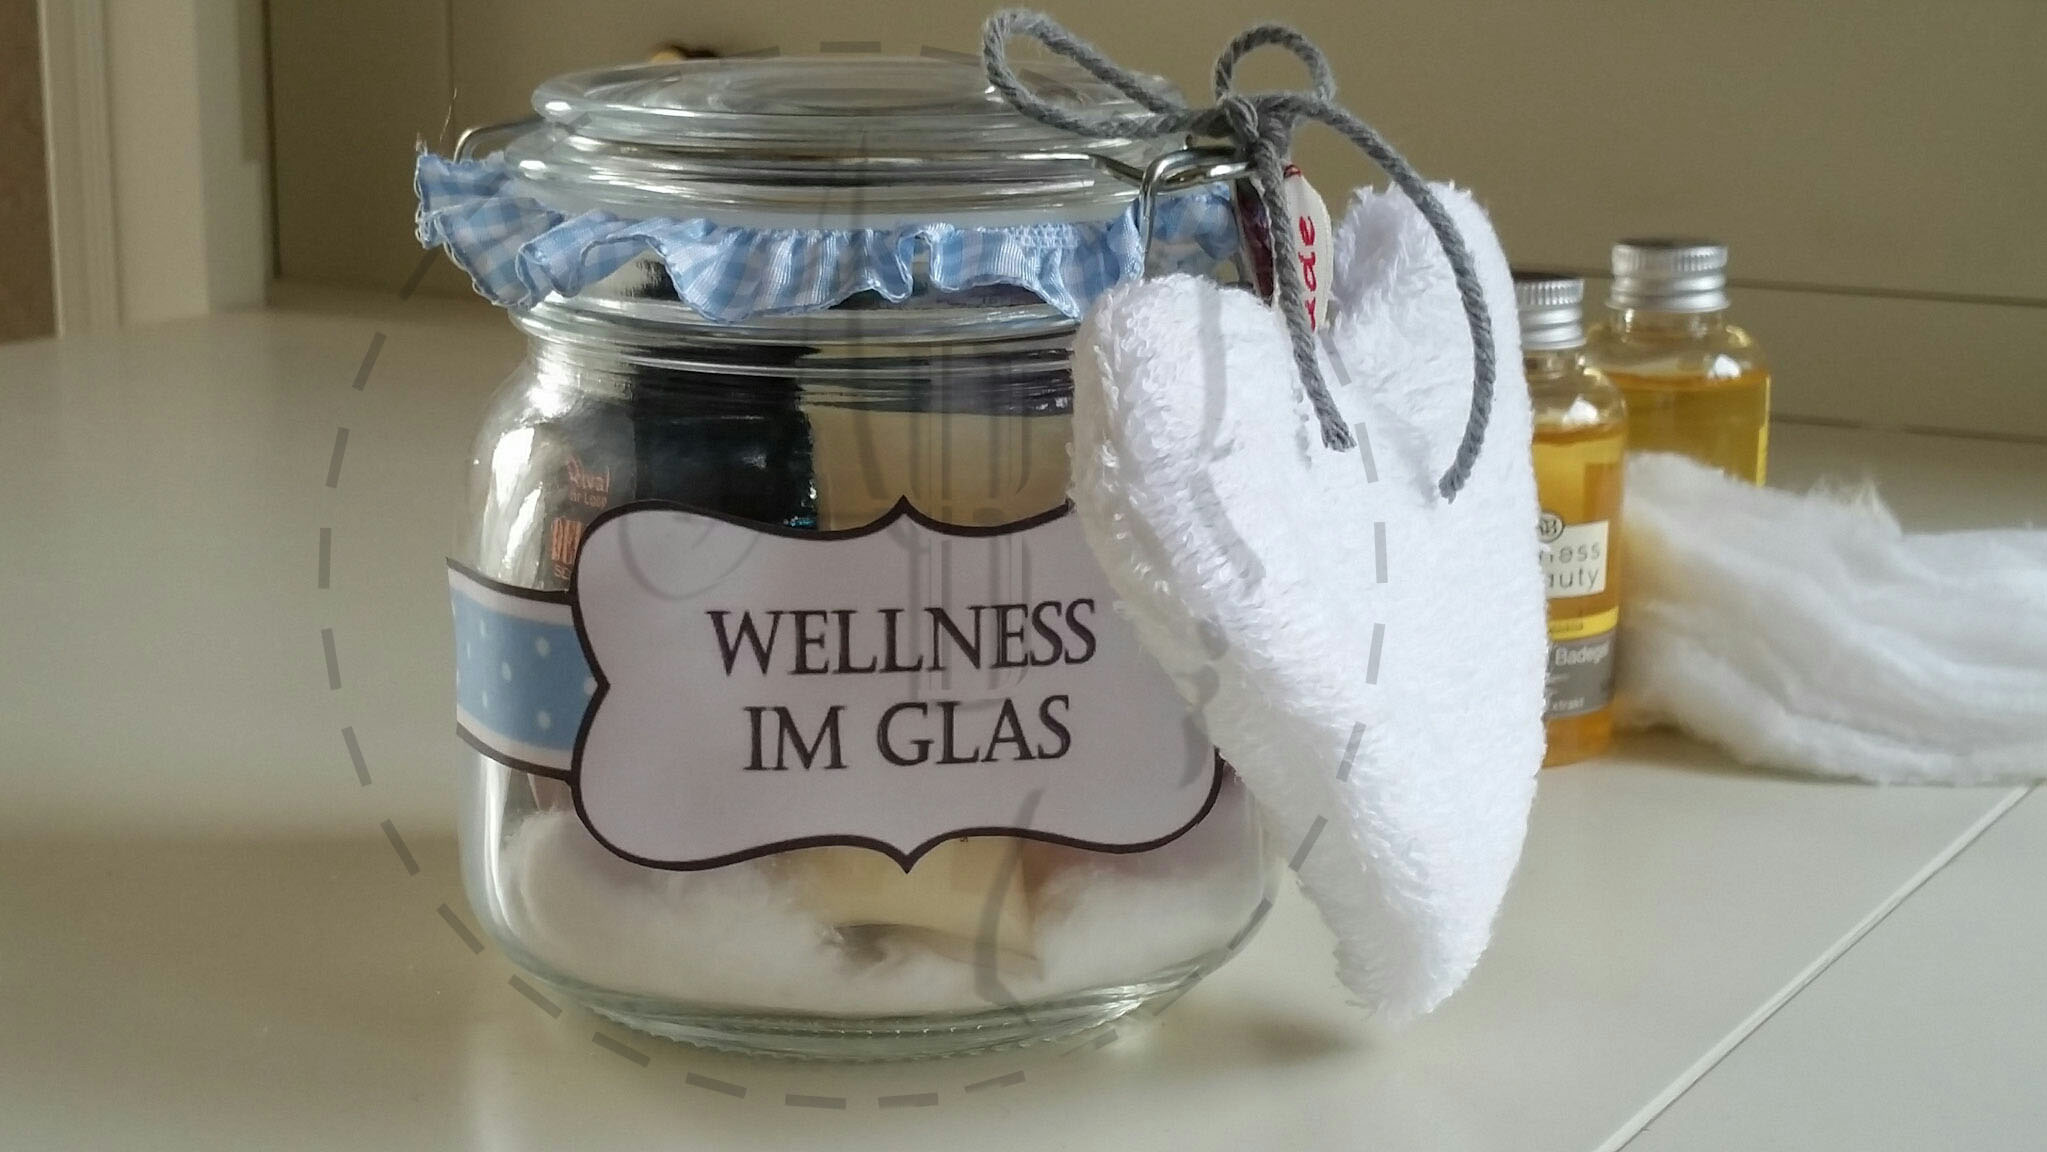 Wellness im Glas